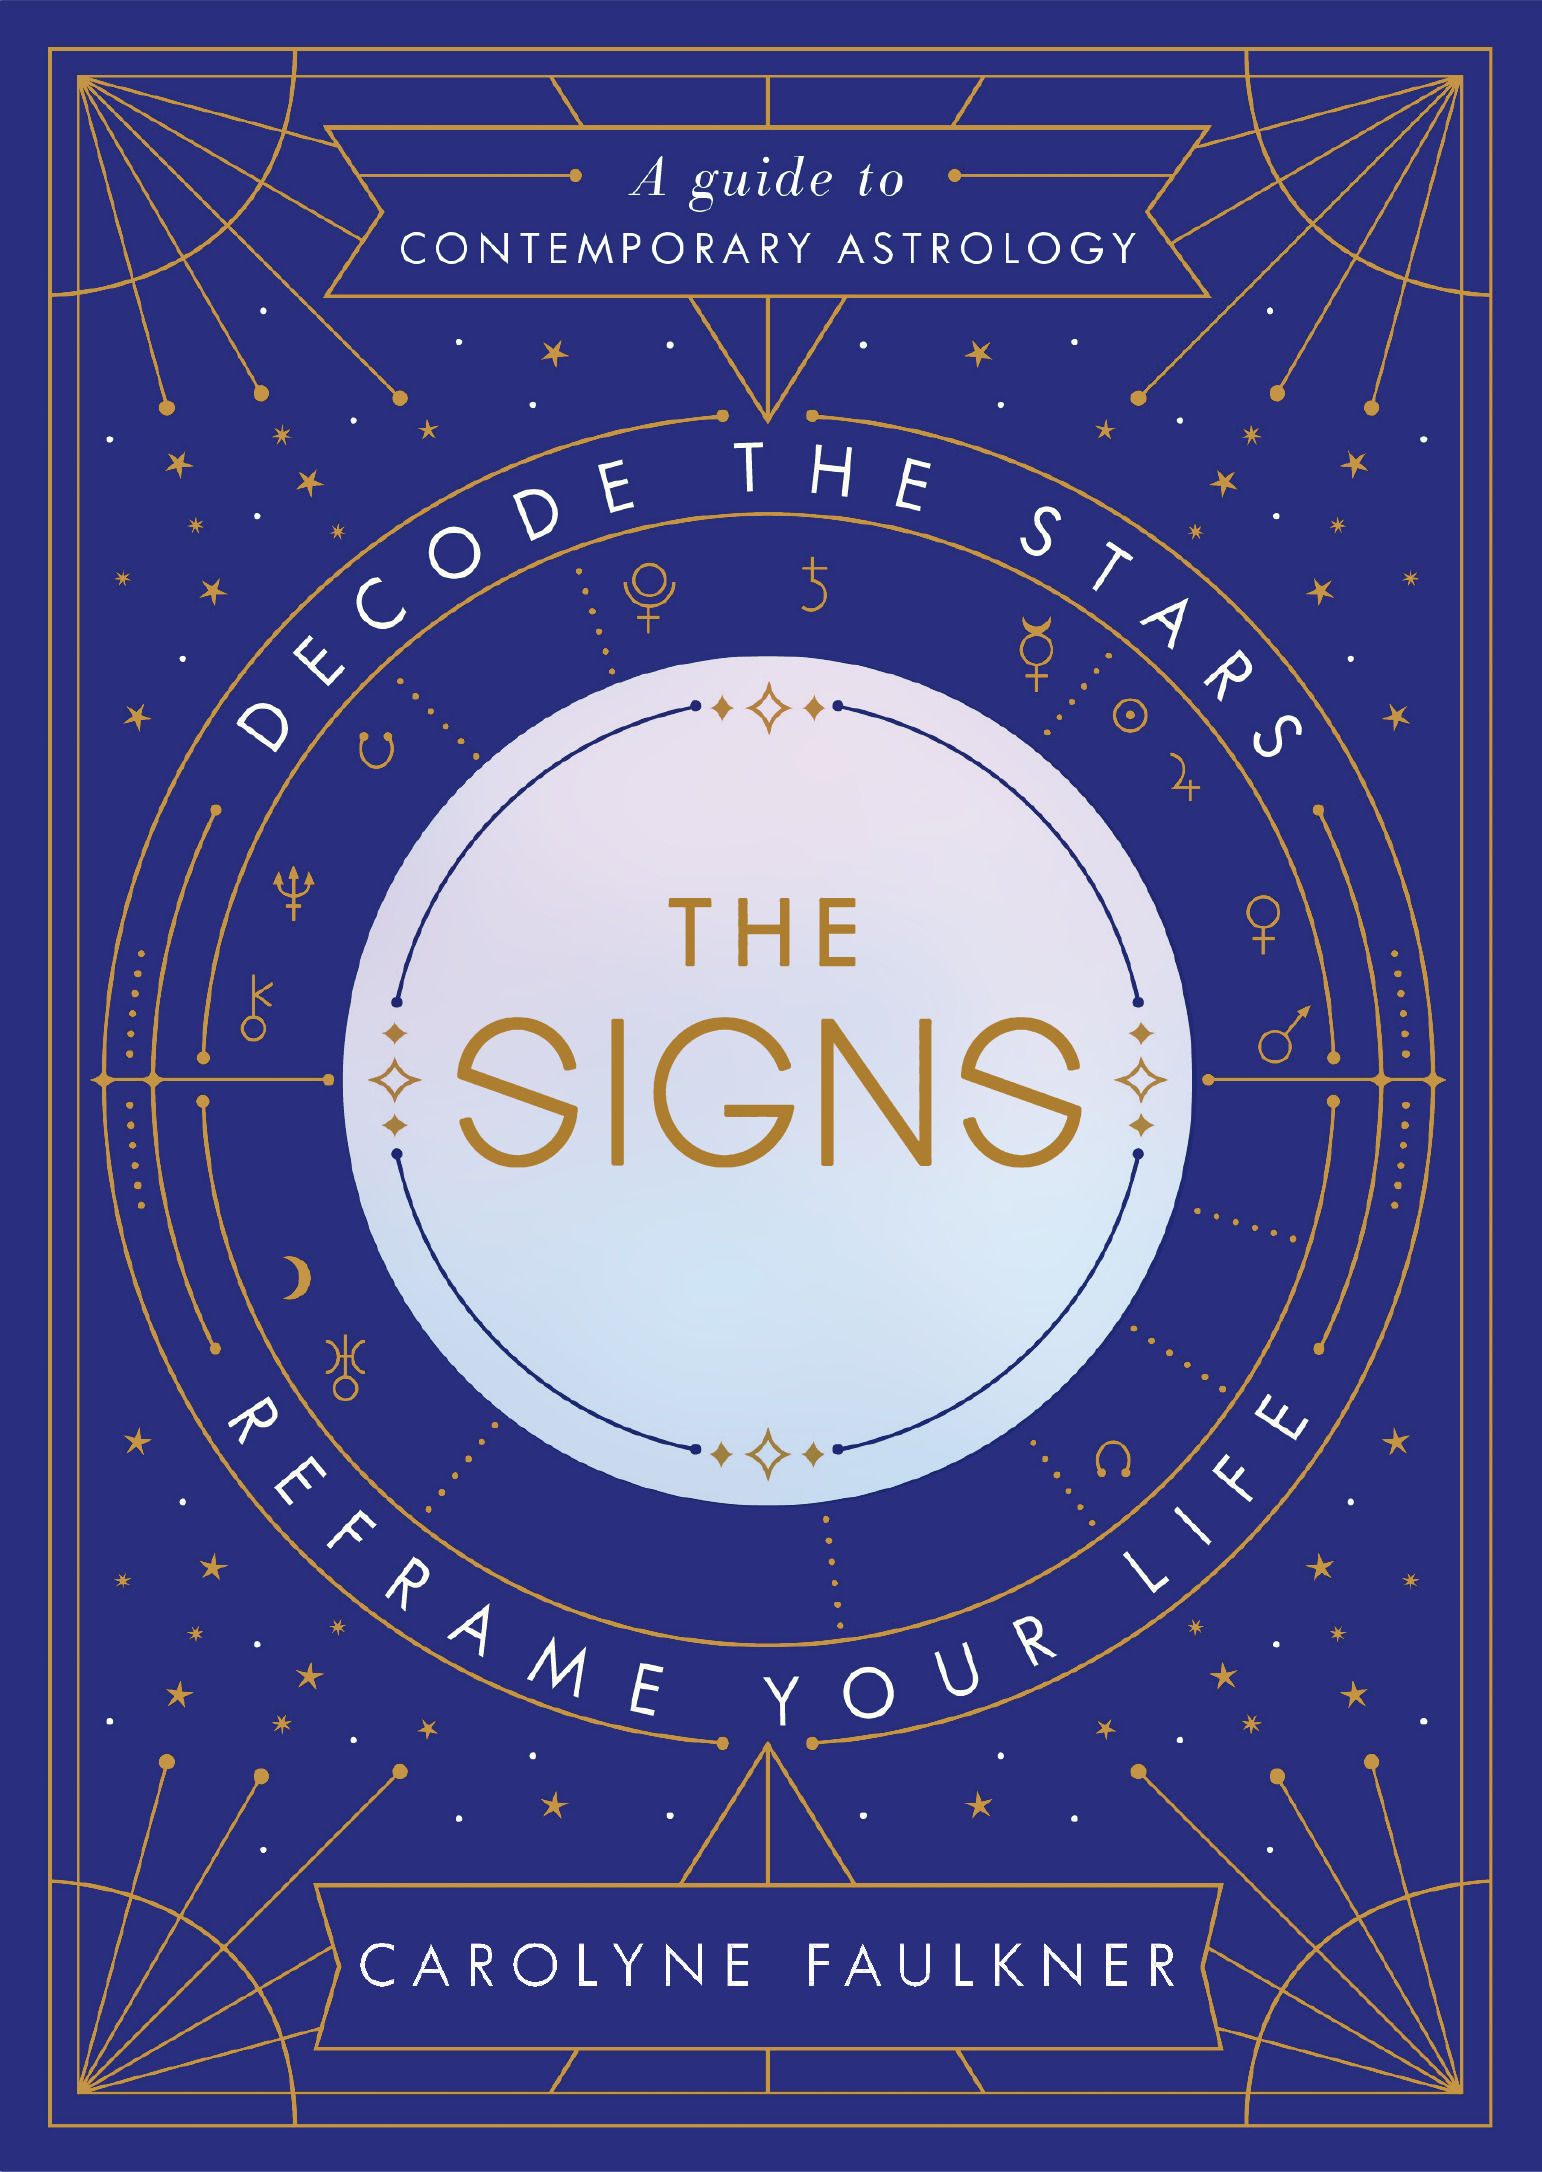 Another great reference book for astrology basics.